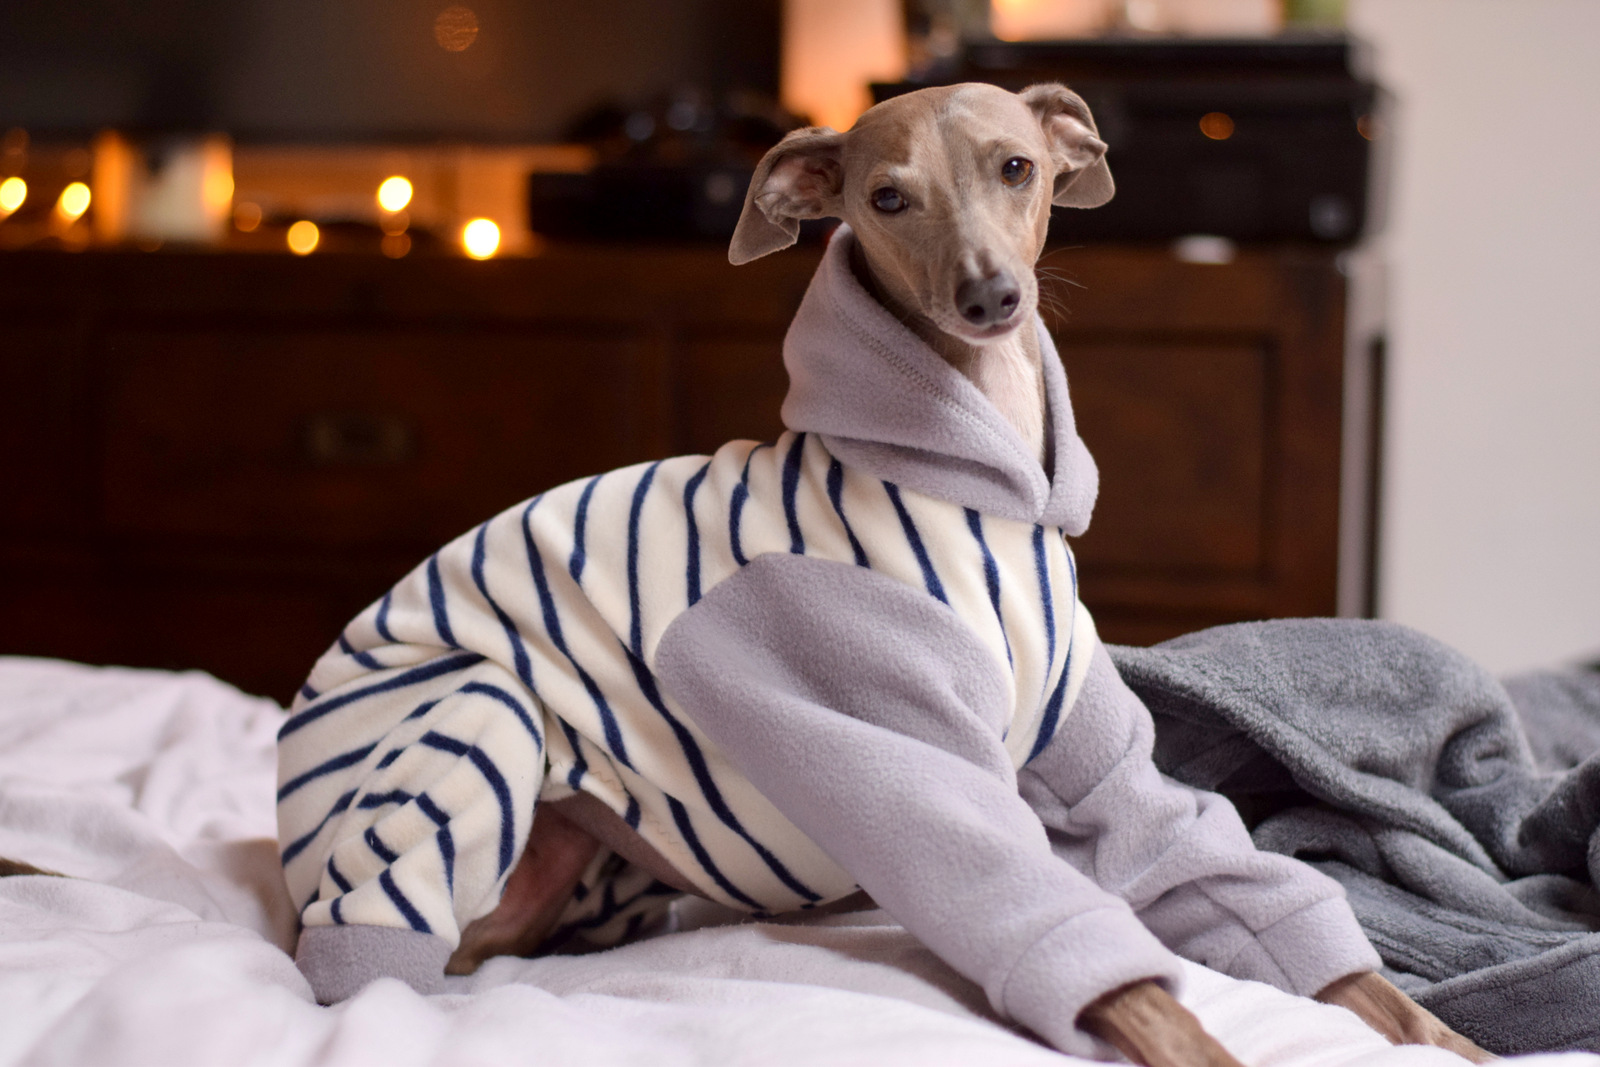 Italian Greyhound Clothes – LOKO Pet Apparel